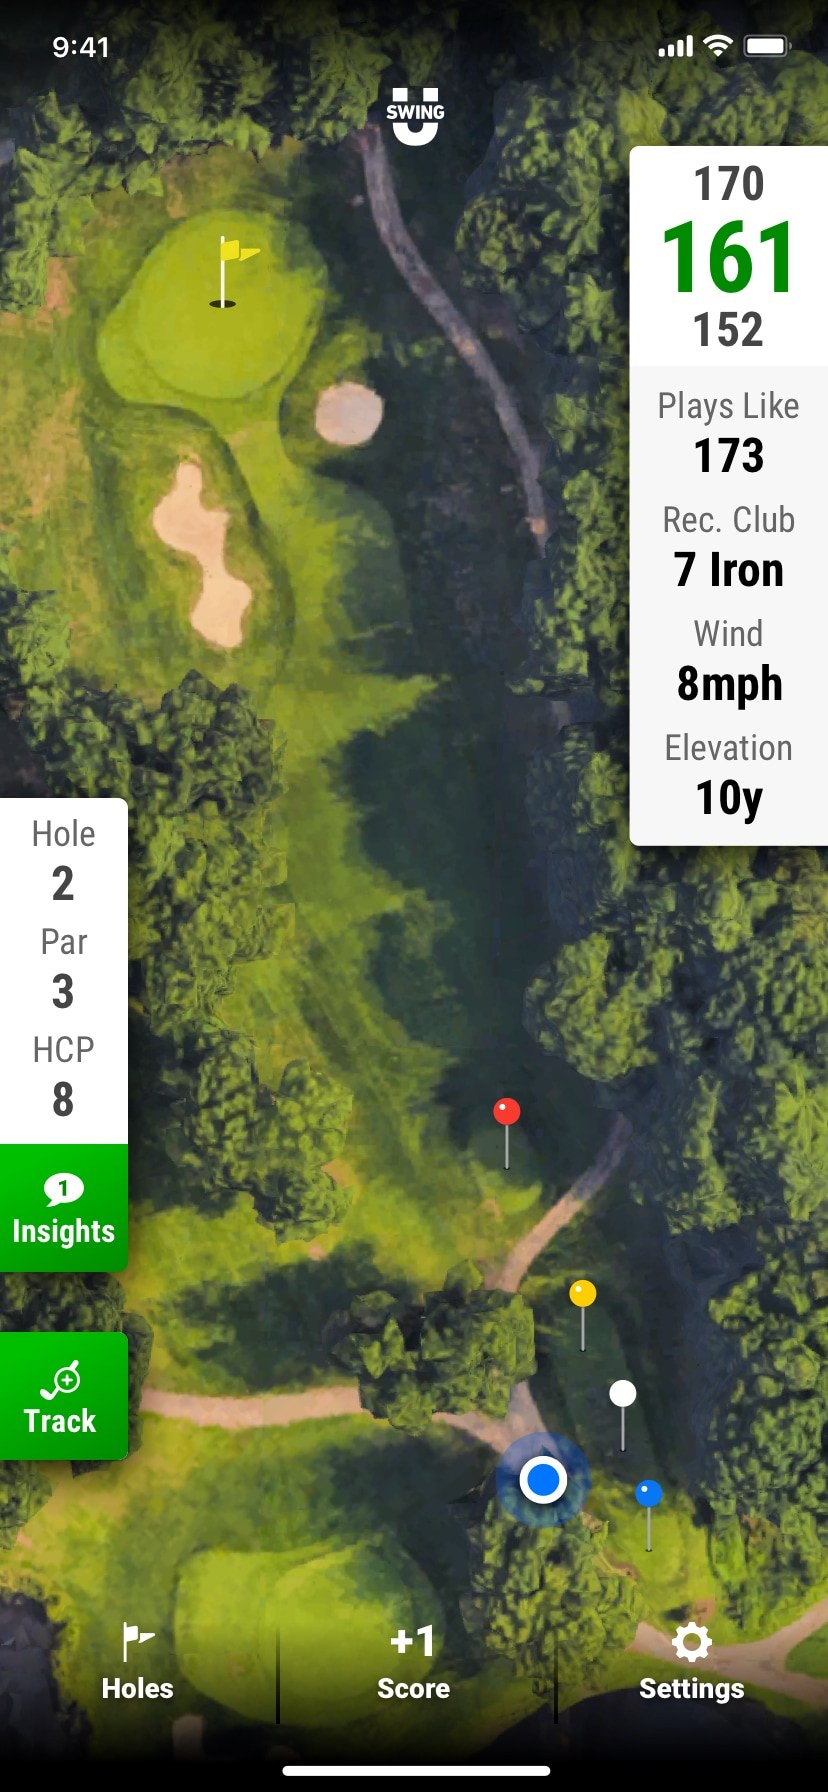 SwingU - Screenshot - SwingU - Golf GPS